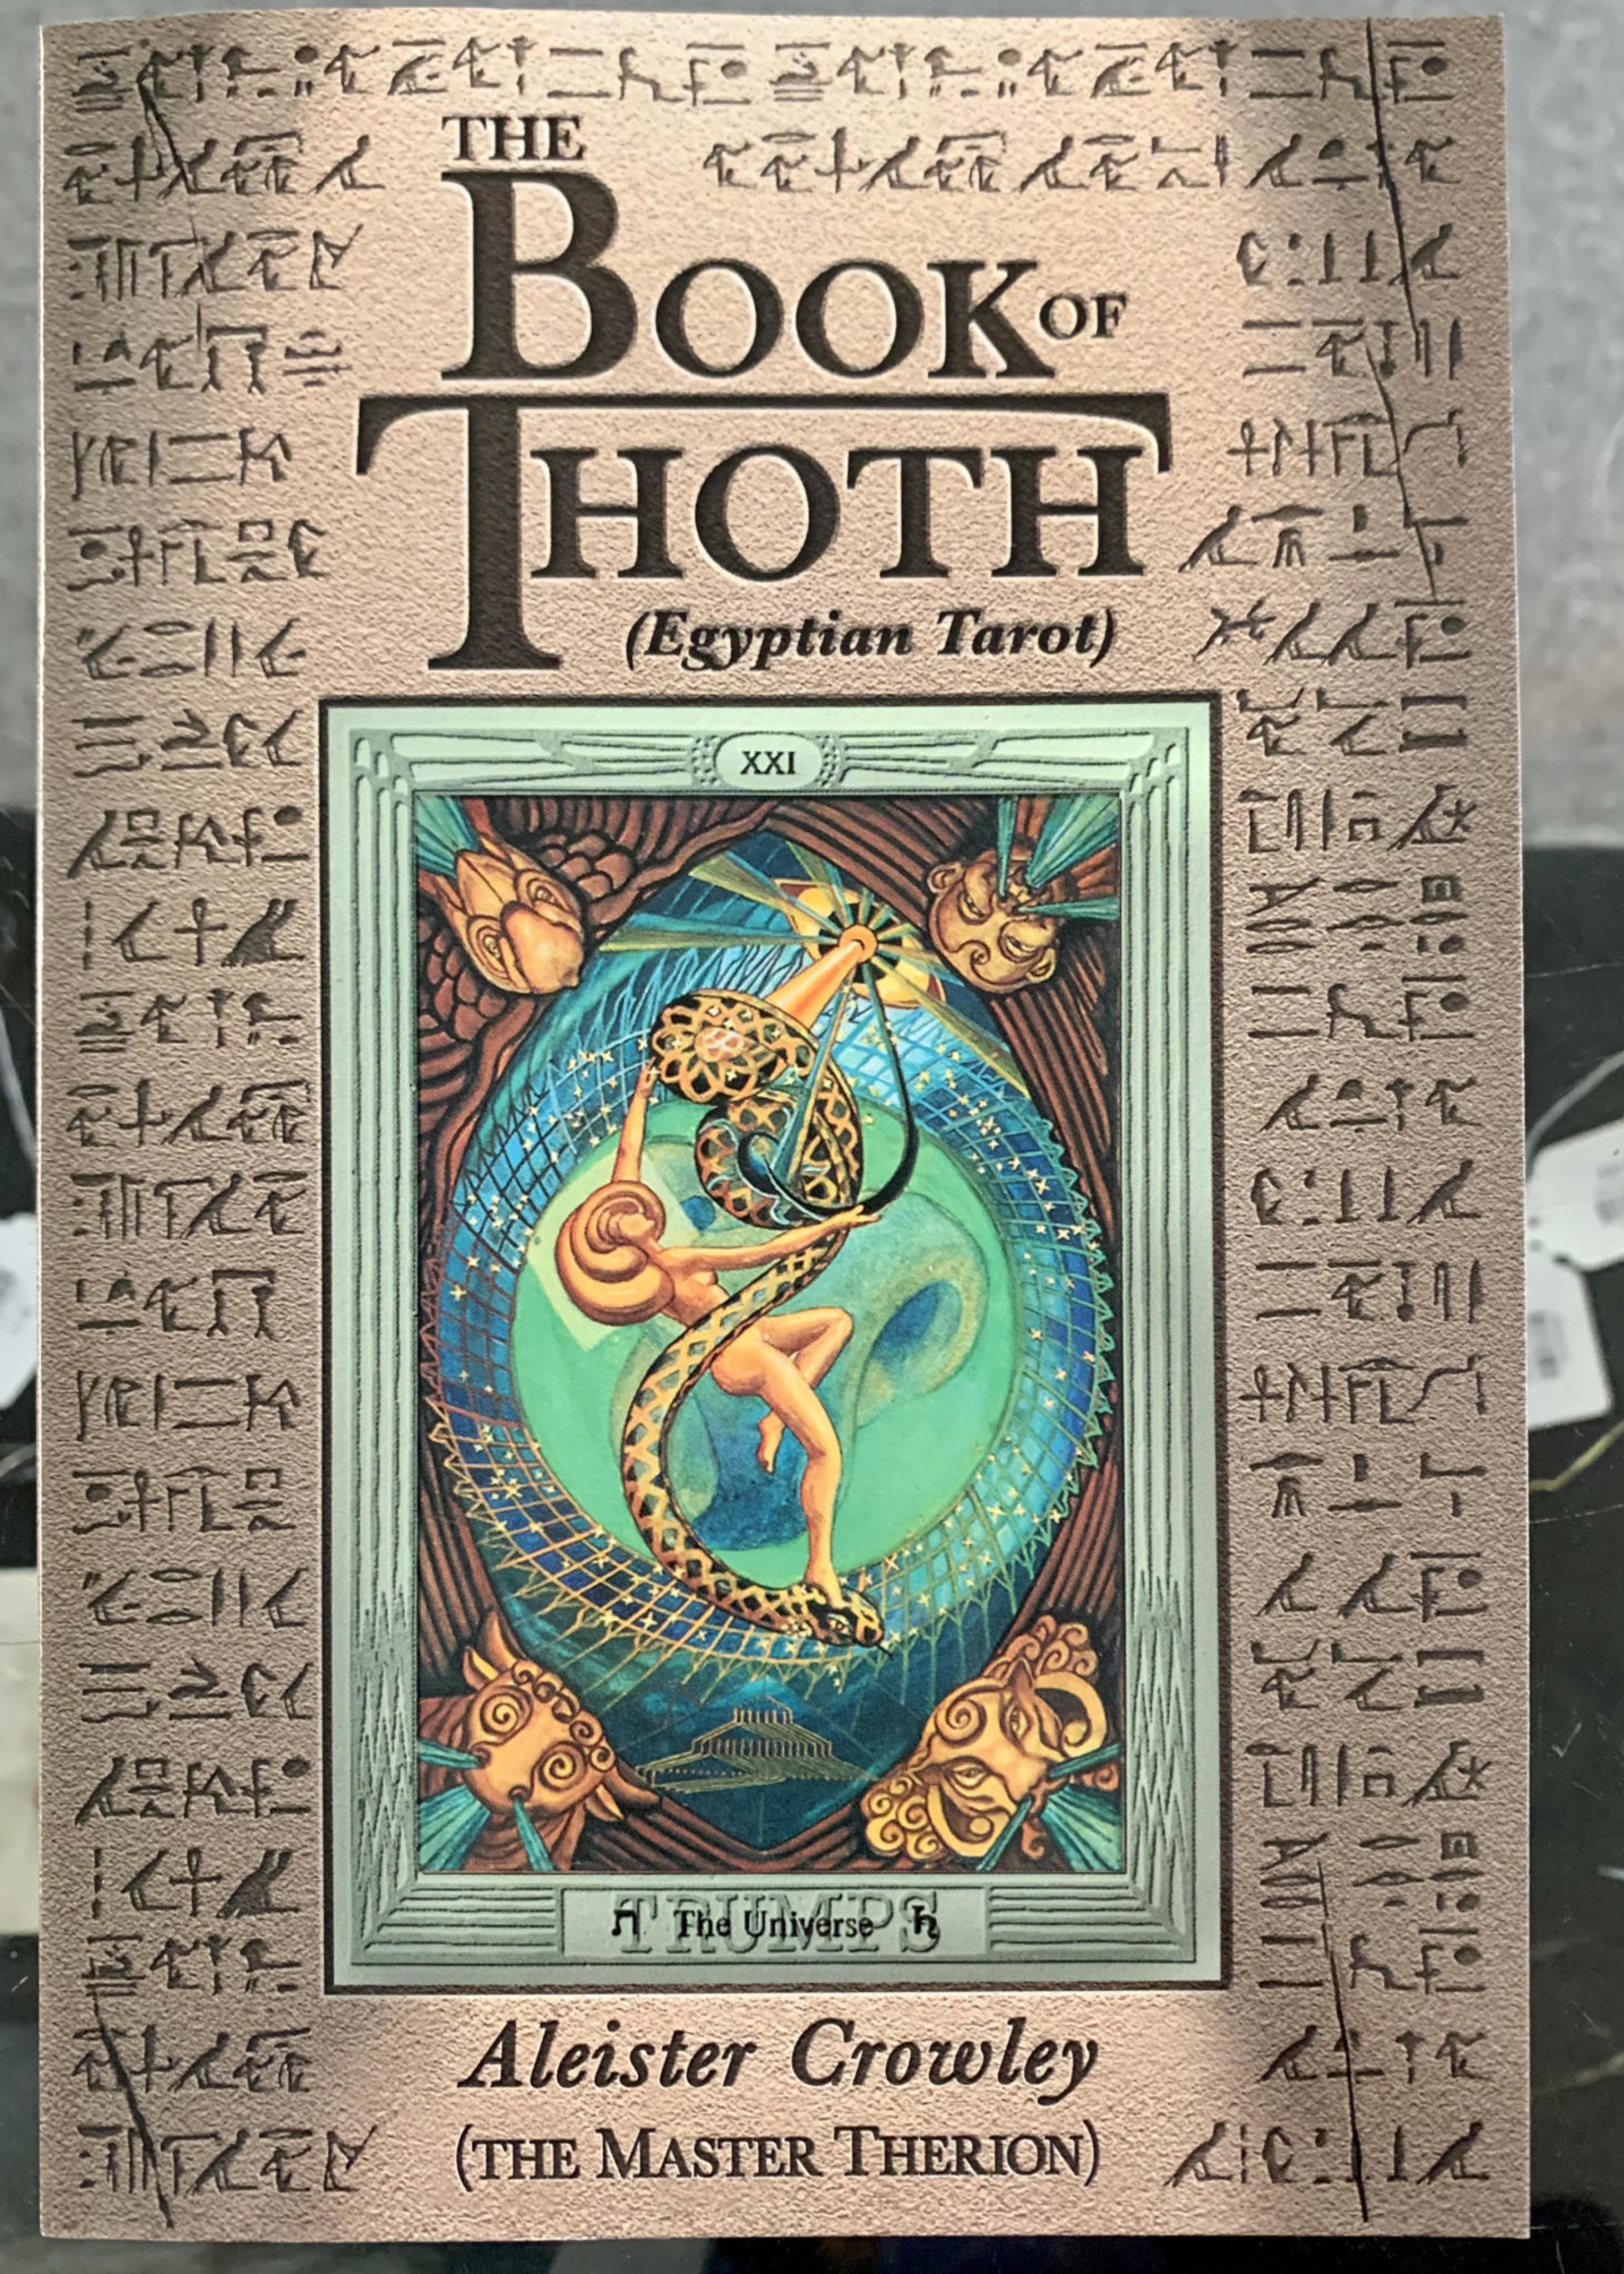 The Book of Thoth (Egyptian Tarot) - Aleister Crowley